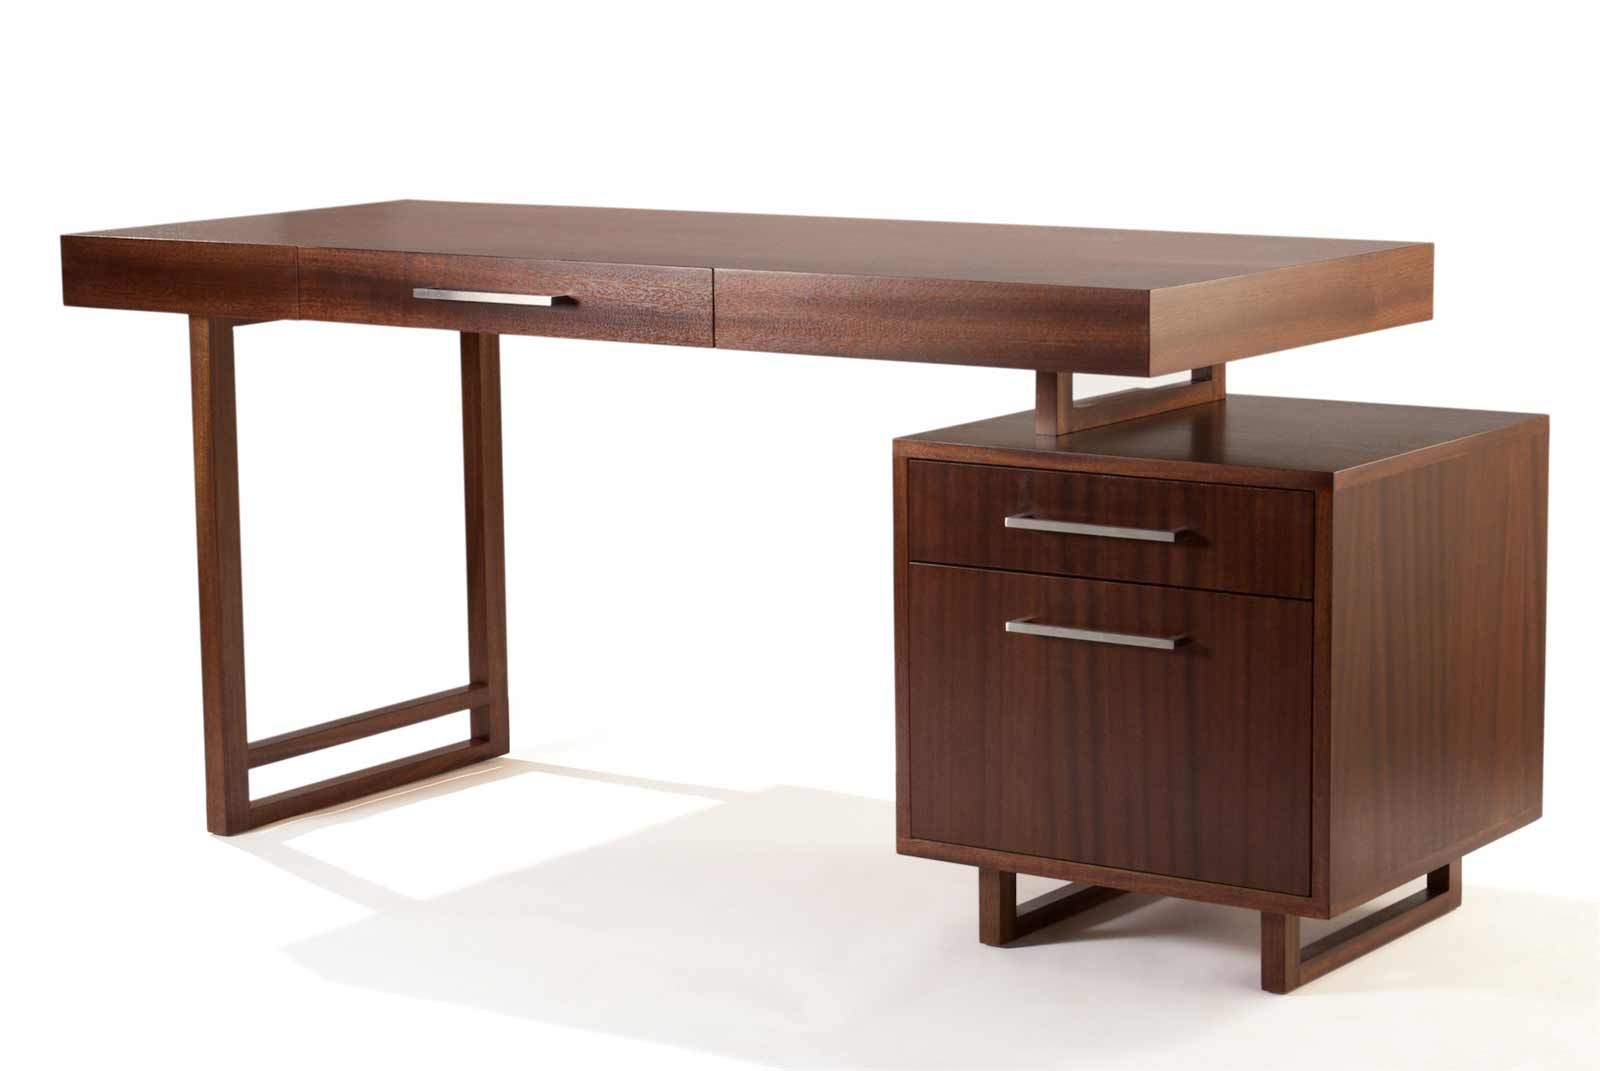 20 Modern Desk Ideas For Your Home Office Office Desks Desks And Woods